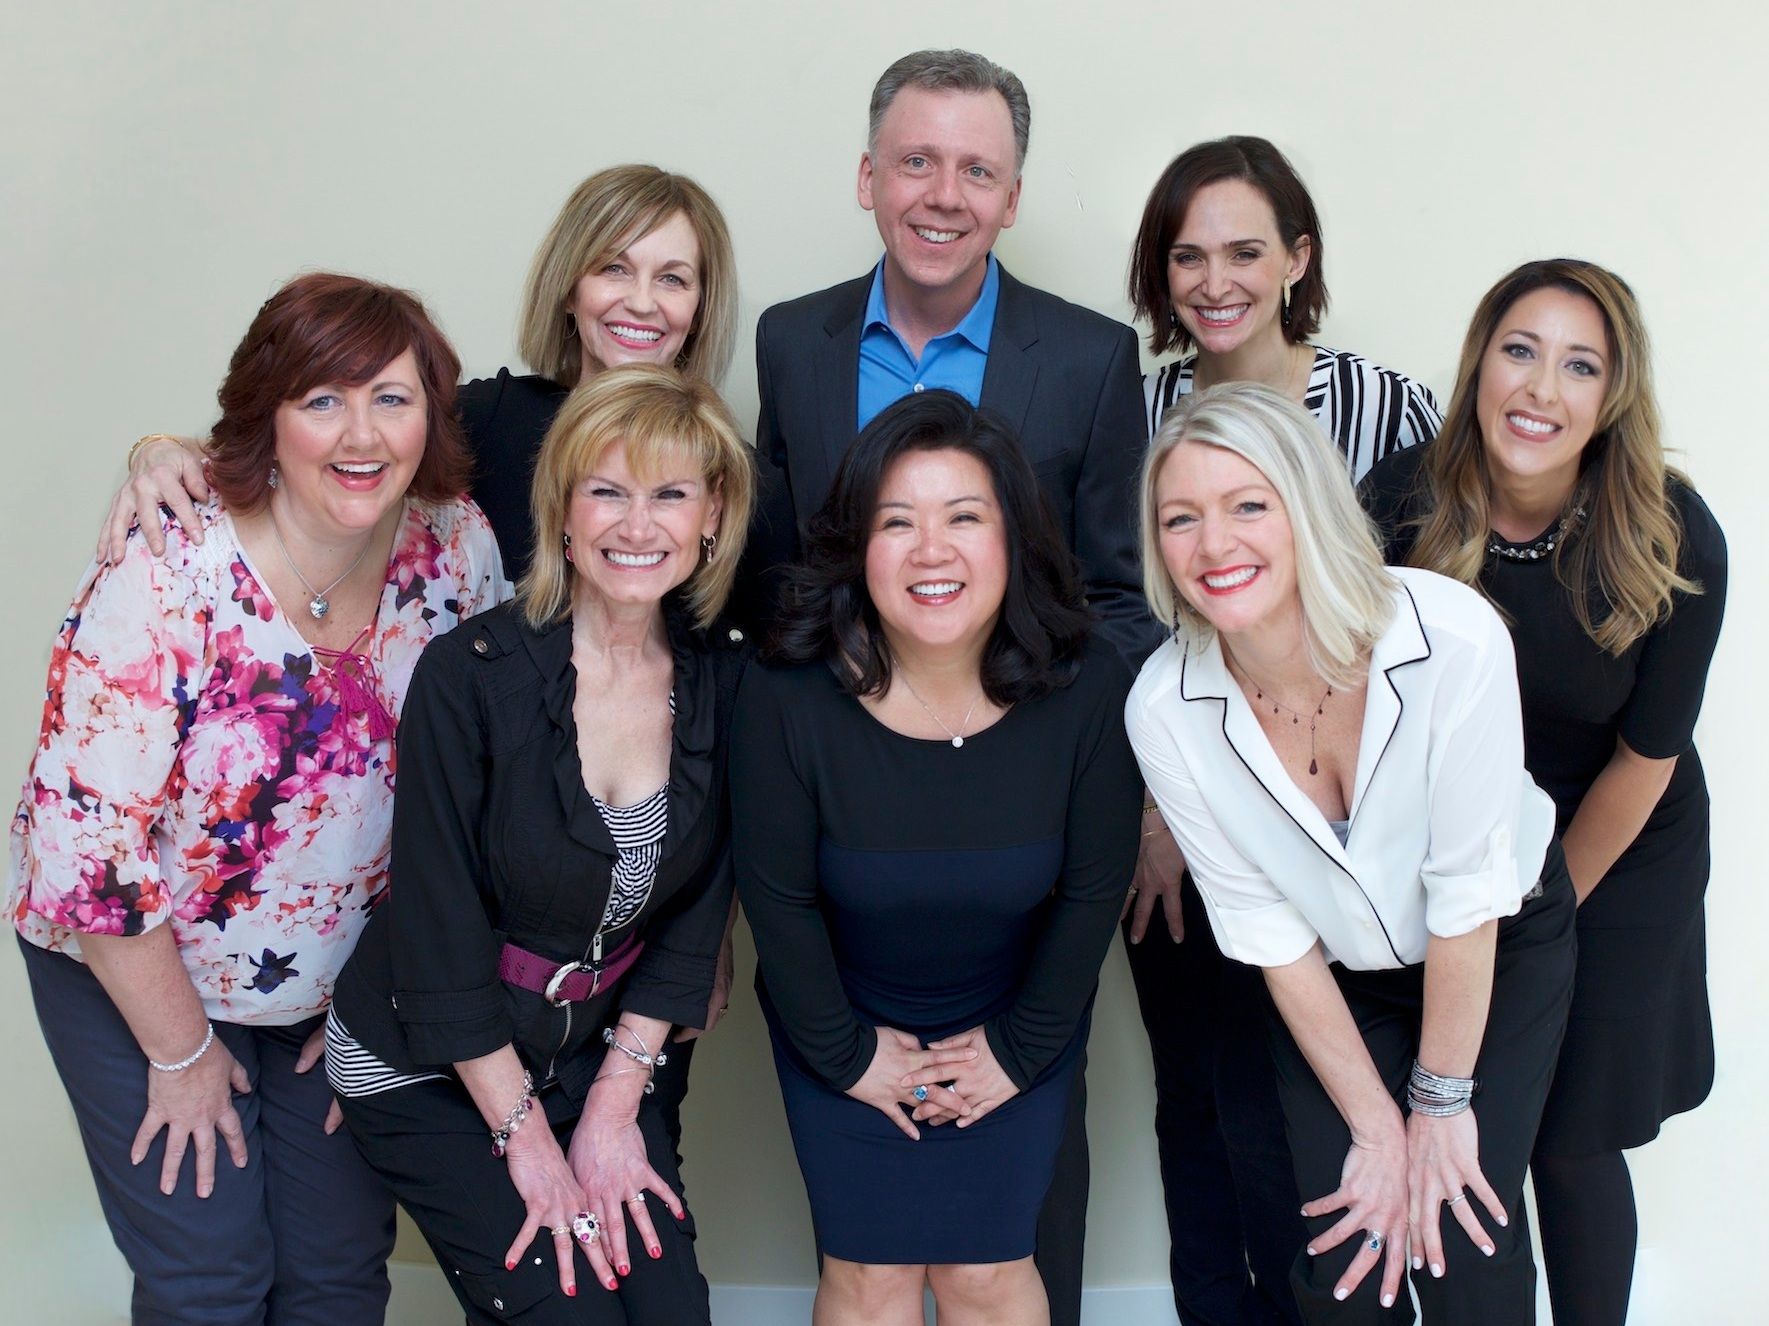 Our Team - Huszti Dental Care's professionals are chosen not just for their expertise in the field, but on how they make you feel from the moment you walk into our Milford office. This caring group stays on top of new methods and technologies that make you more comfortable and achieve better results. They love to see you smile.